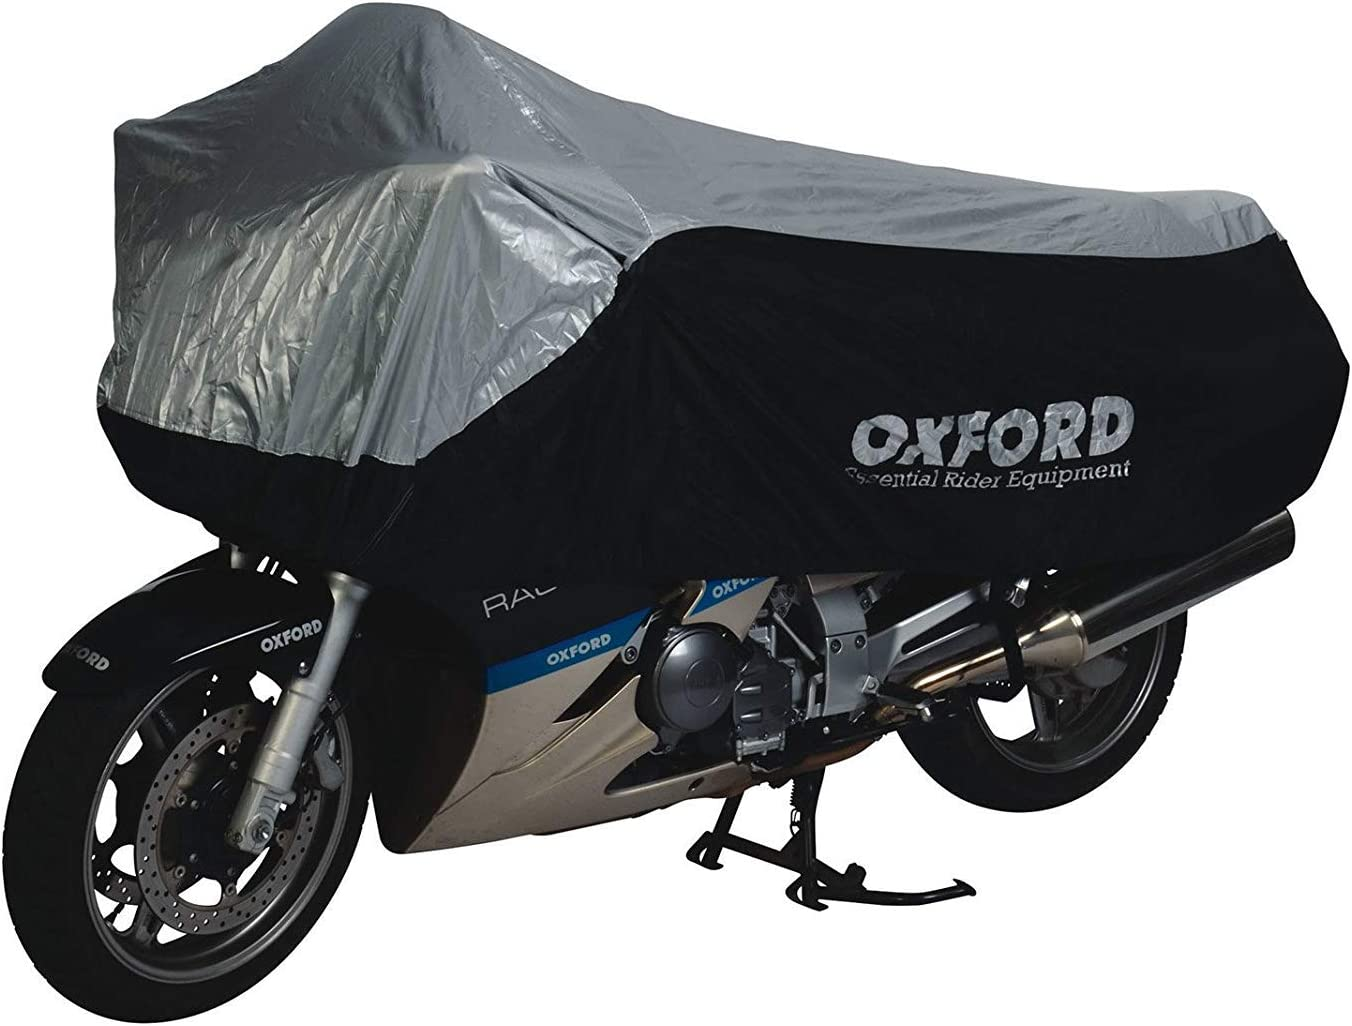 OxGord Indoor Dust Cover for Touring Motorcycles